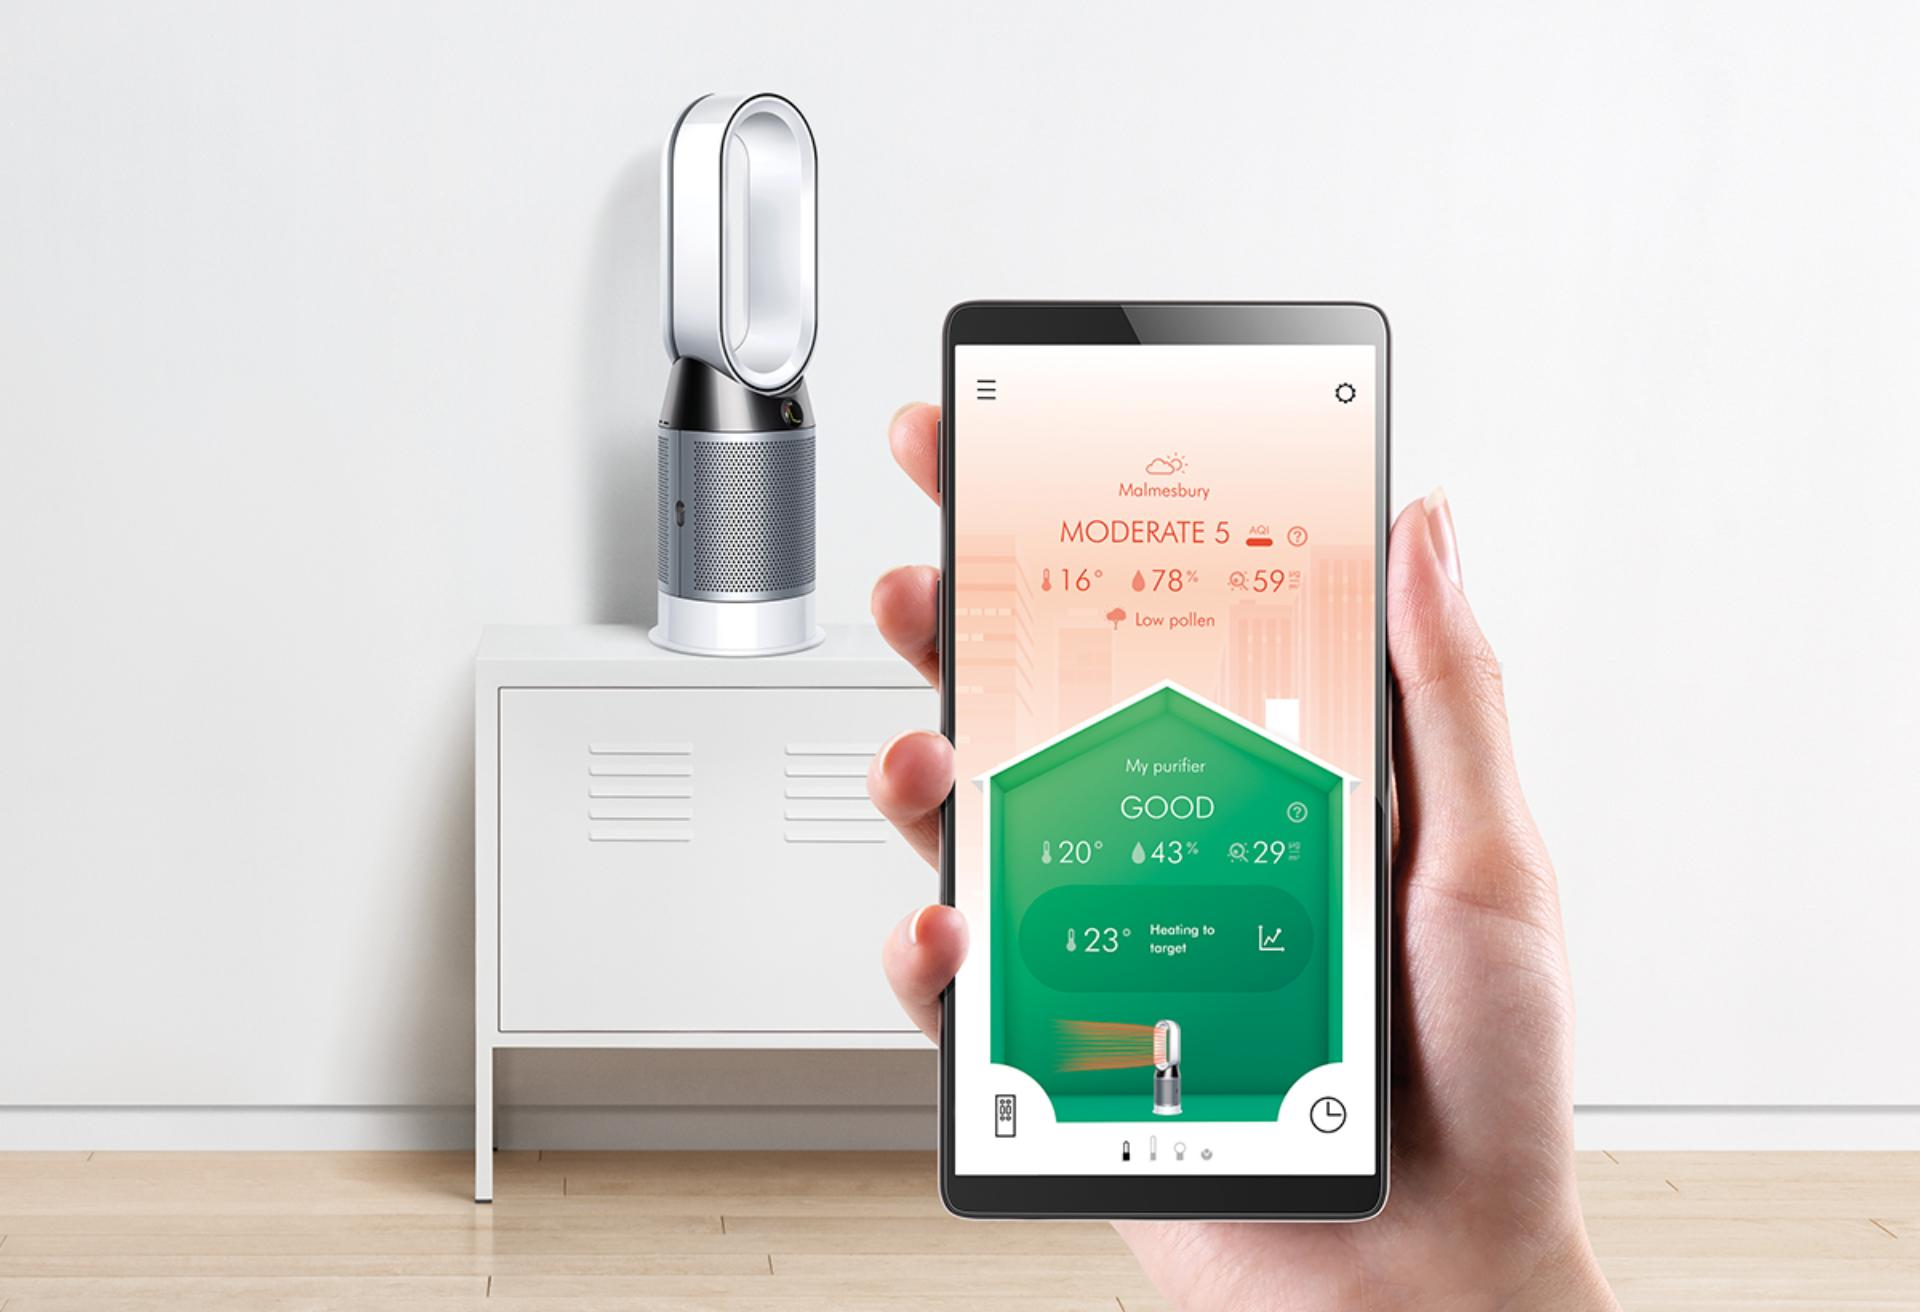 Remotely control Dyson air purifiers and monitor indoor air quality with Dyson Link App